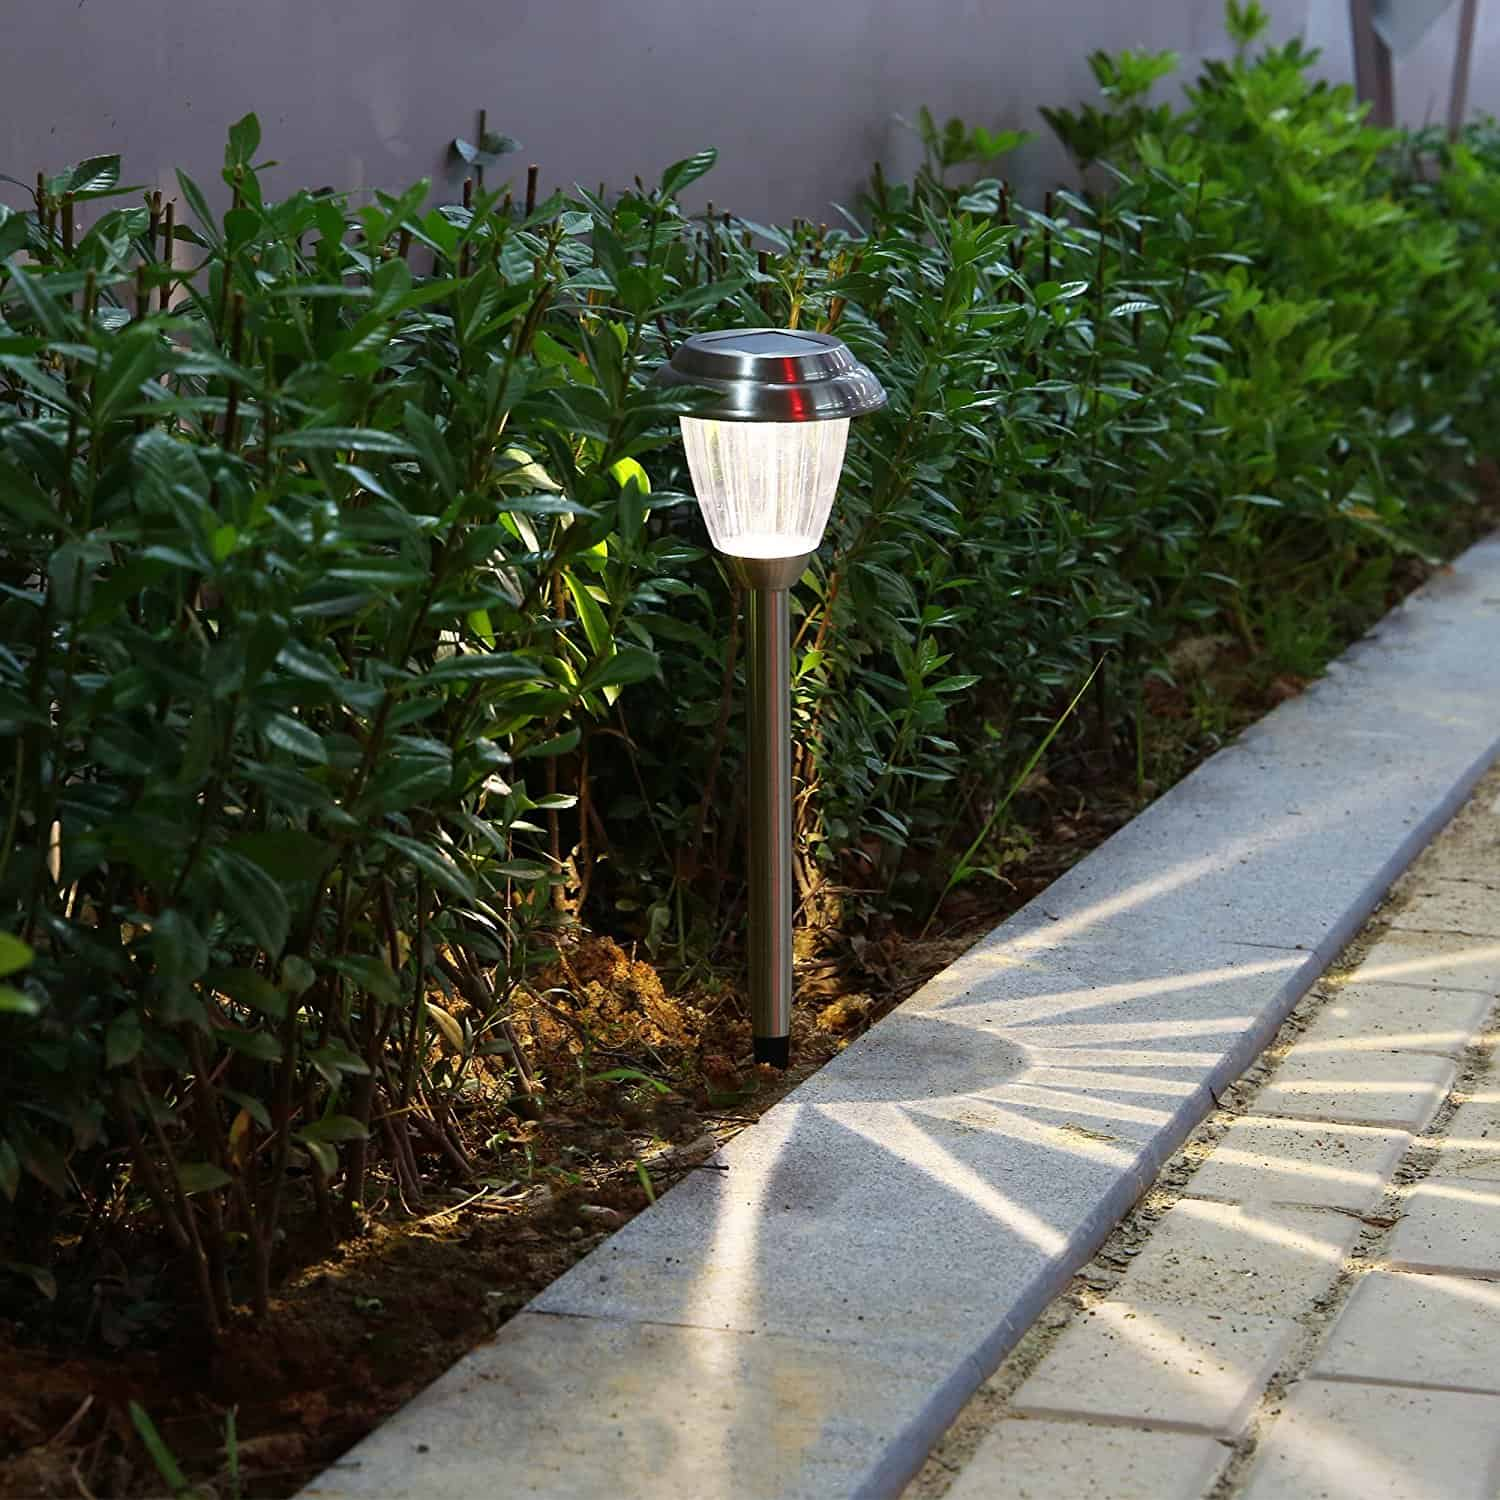 Voona 8-Pack Solar Lights Stainless Steel LED Pathway Landscape lights